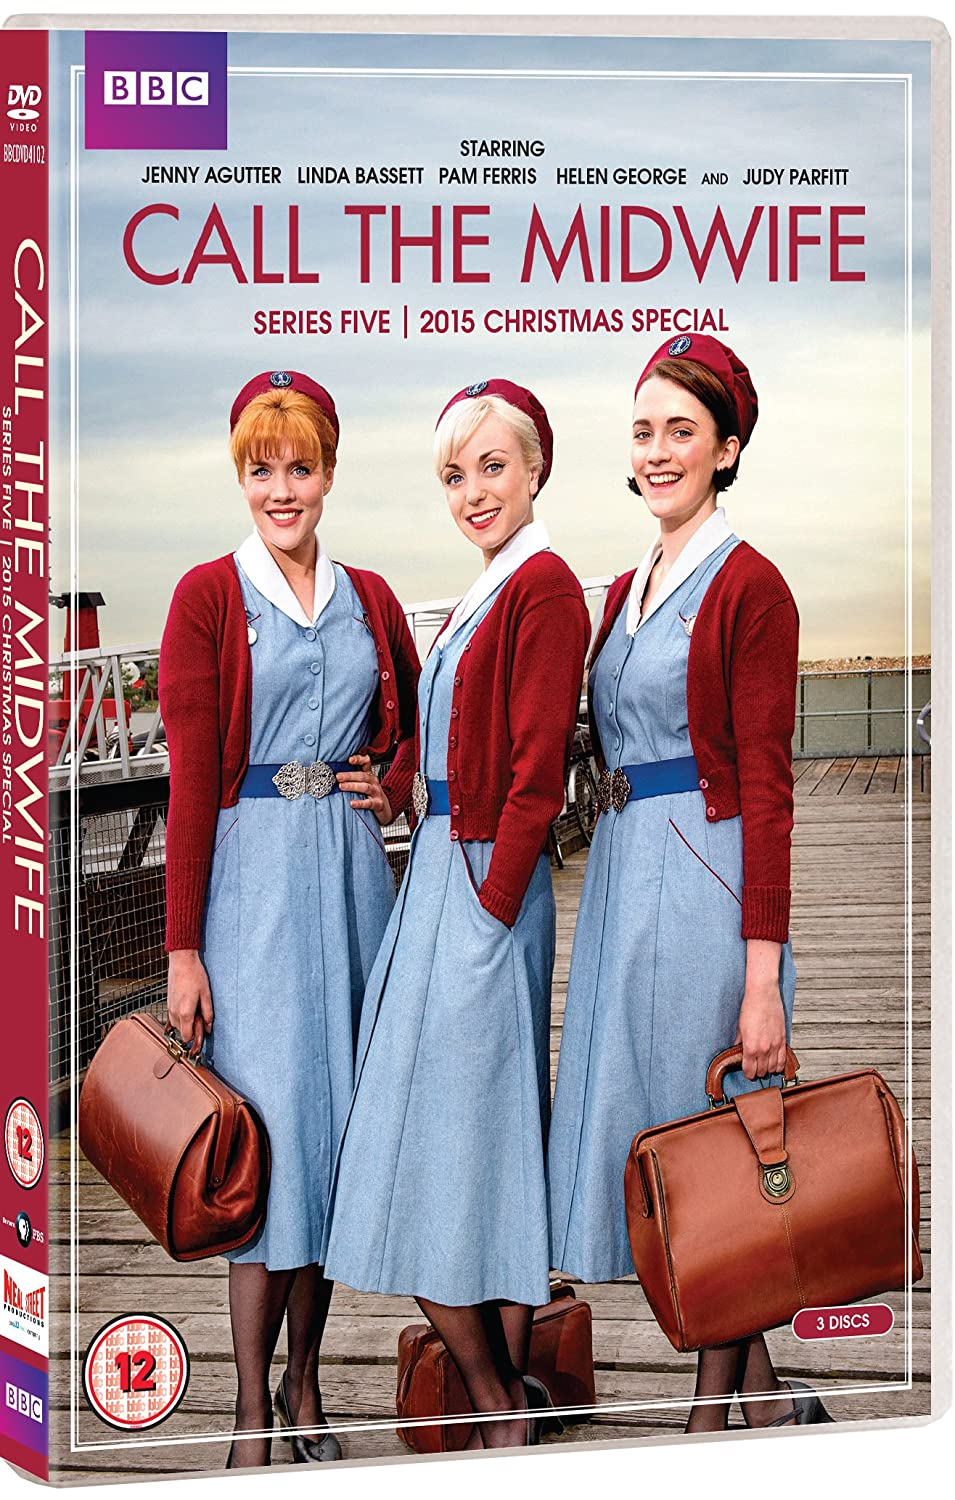 Call the Midwife - Series 5 + 2015 Christmas Special DVD 2016 ...